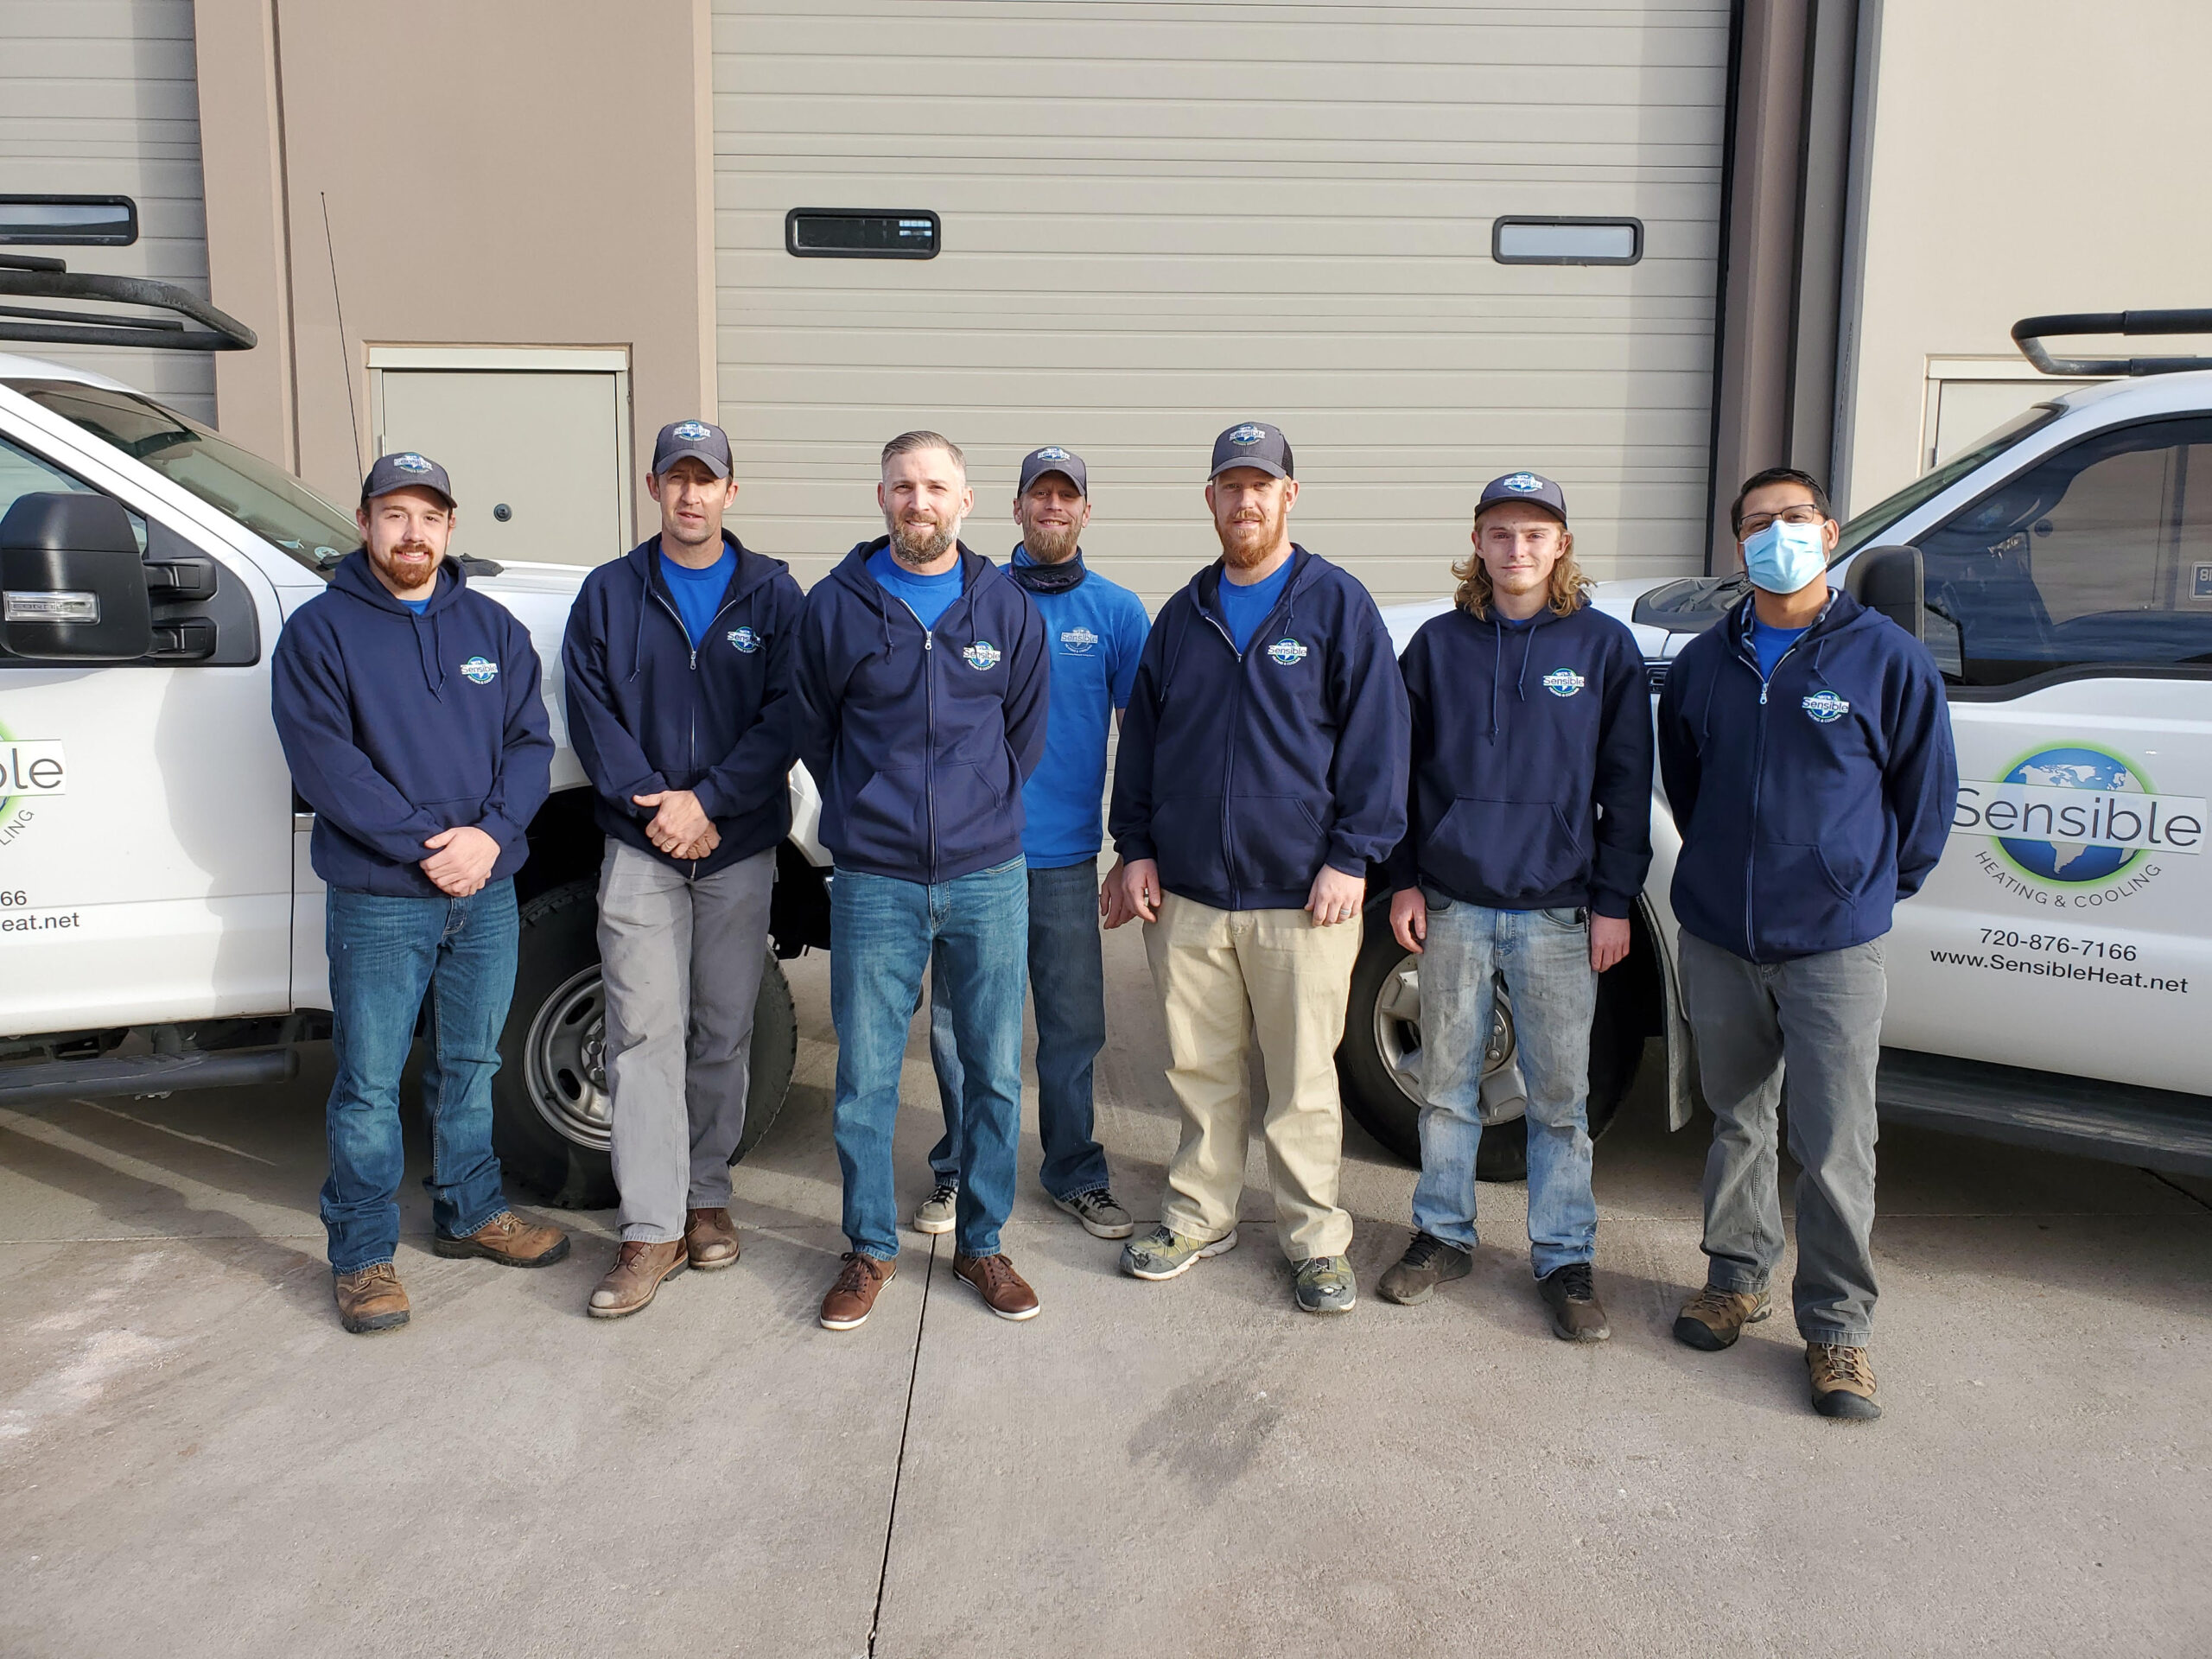 Why Credentials and Reputations Matter Among HVAC Companies